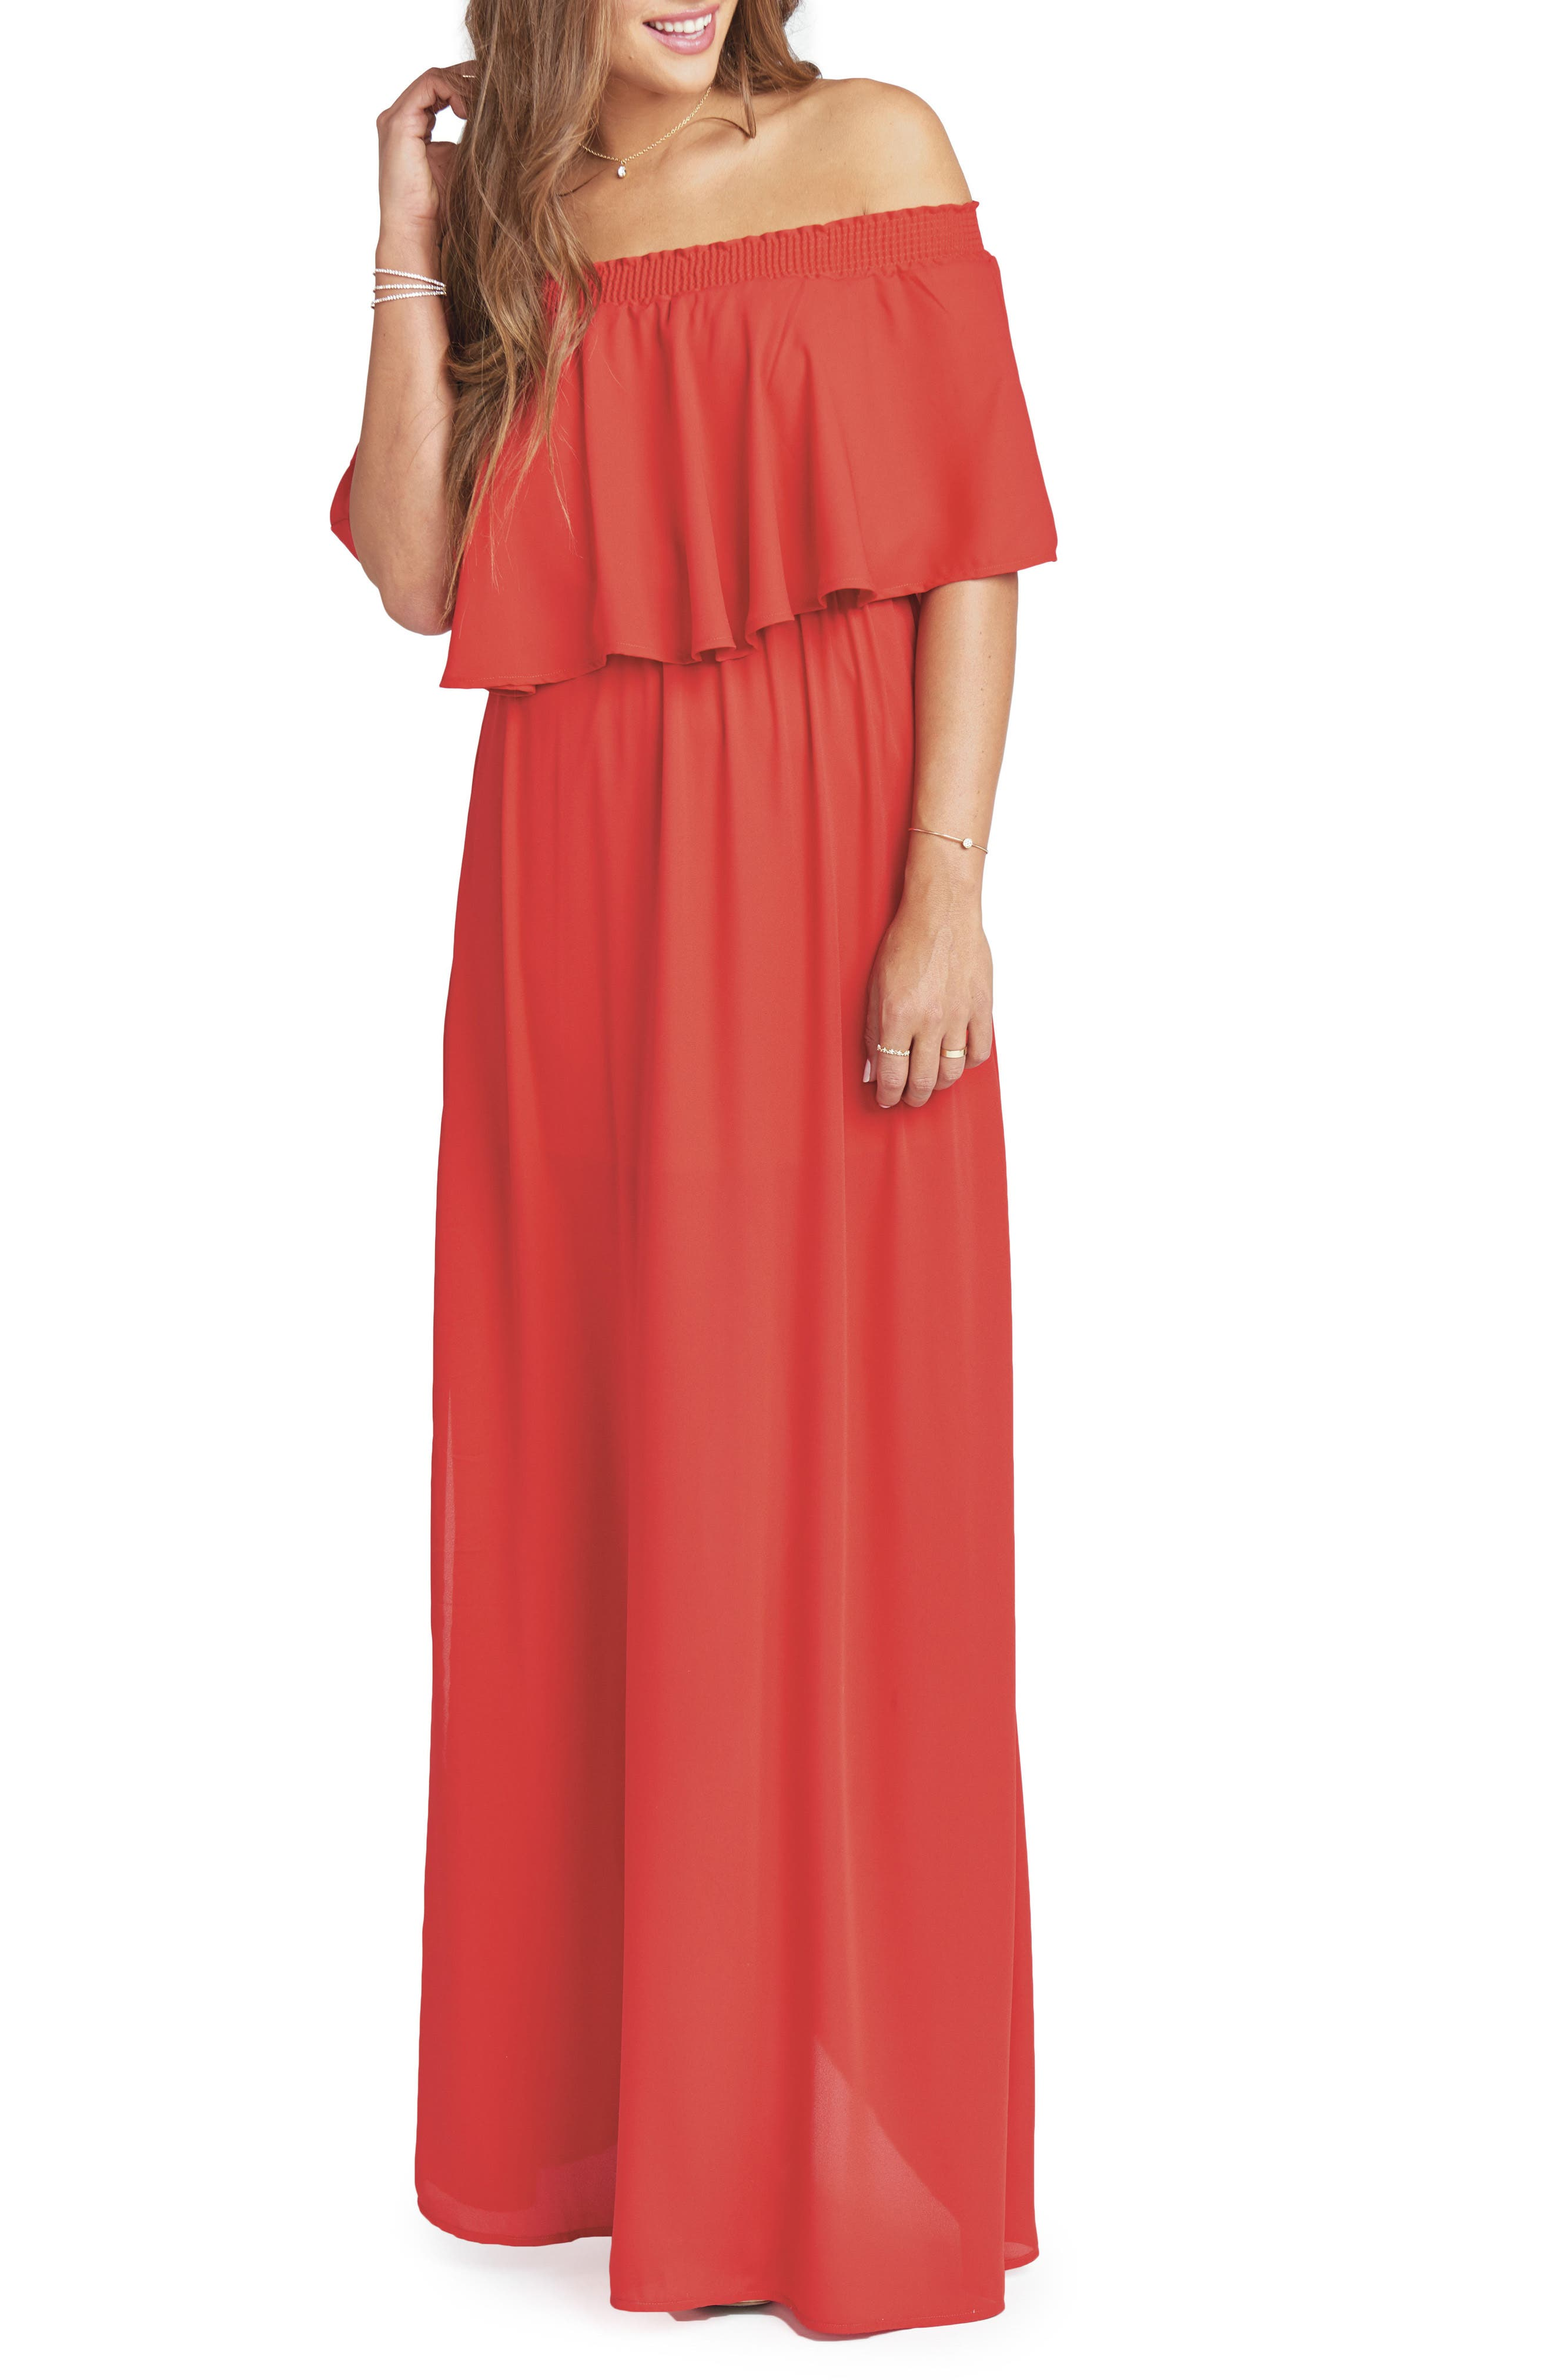 Hacienda Convertible Gown,                         Main,                         color, Lady In Red Crisp